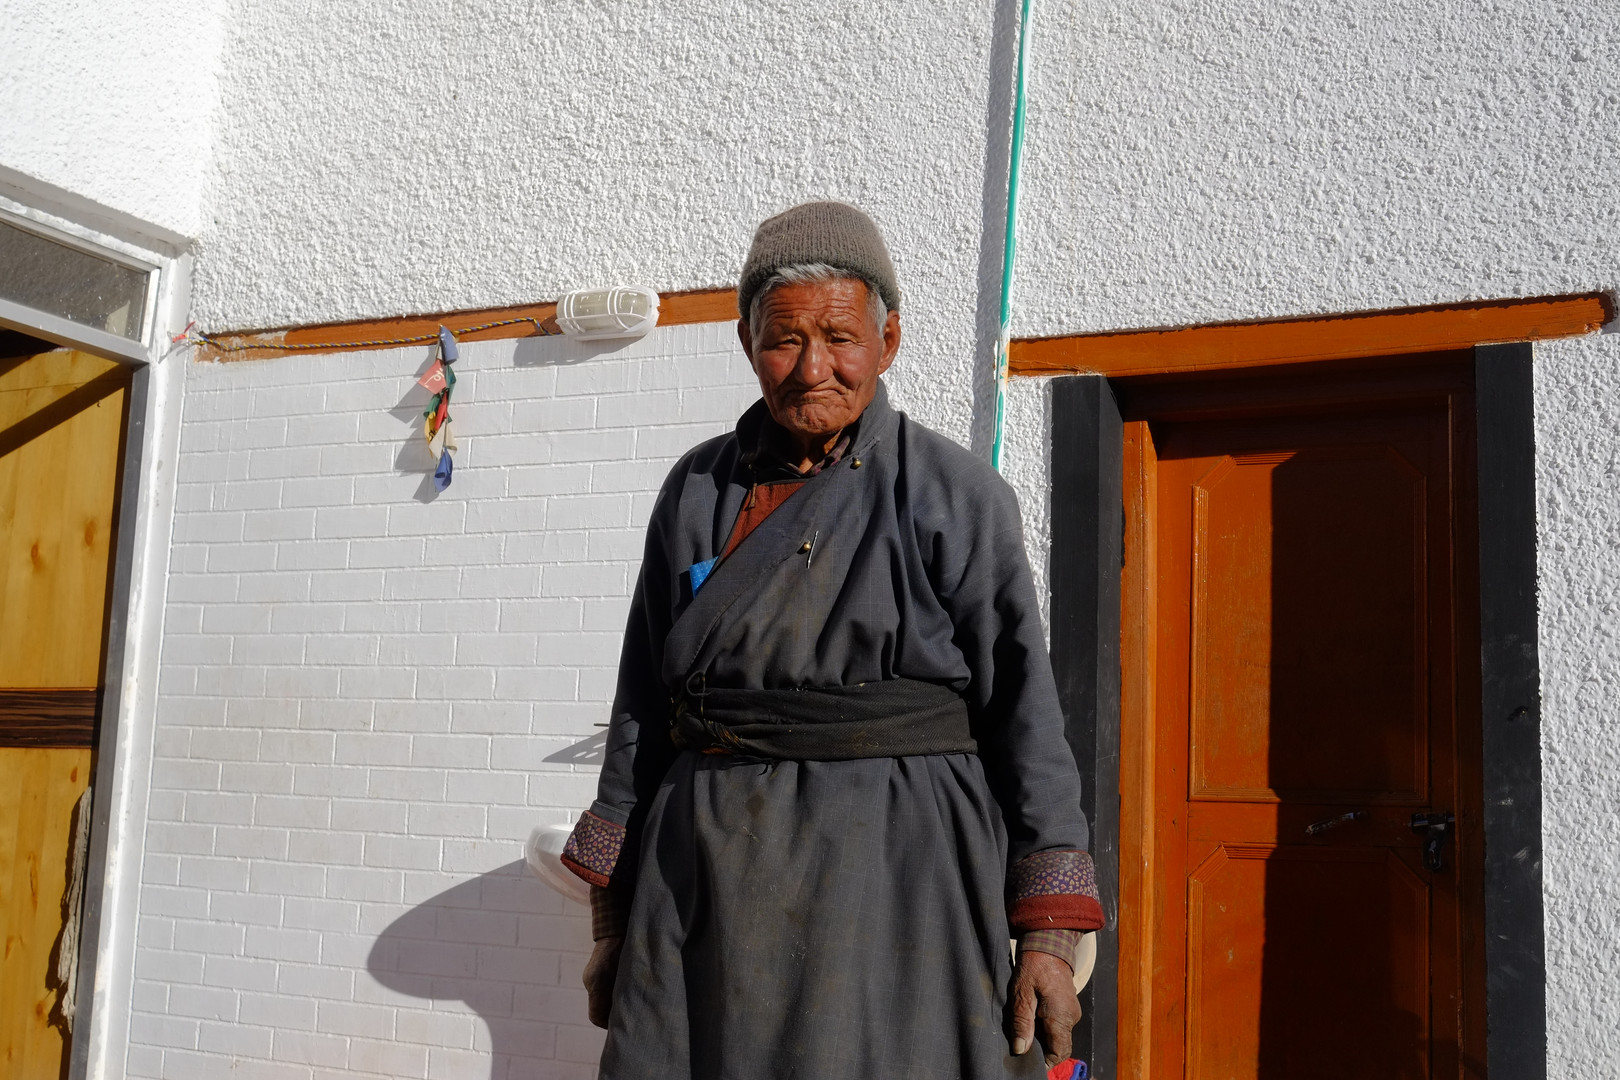 LADAKH TRADITIONAL